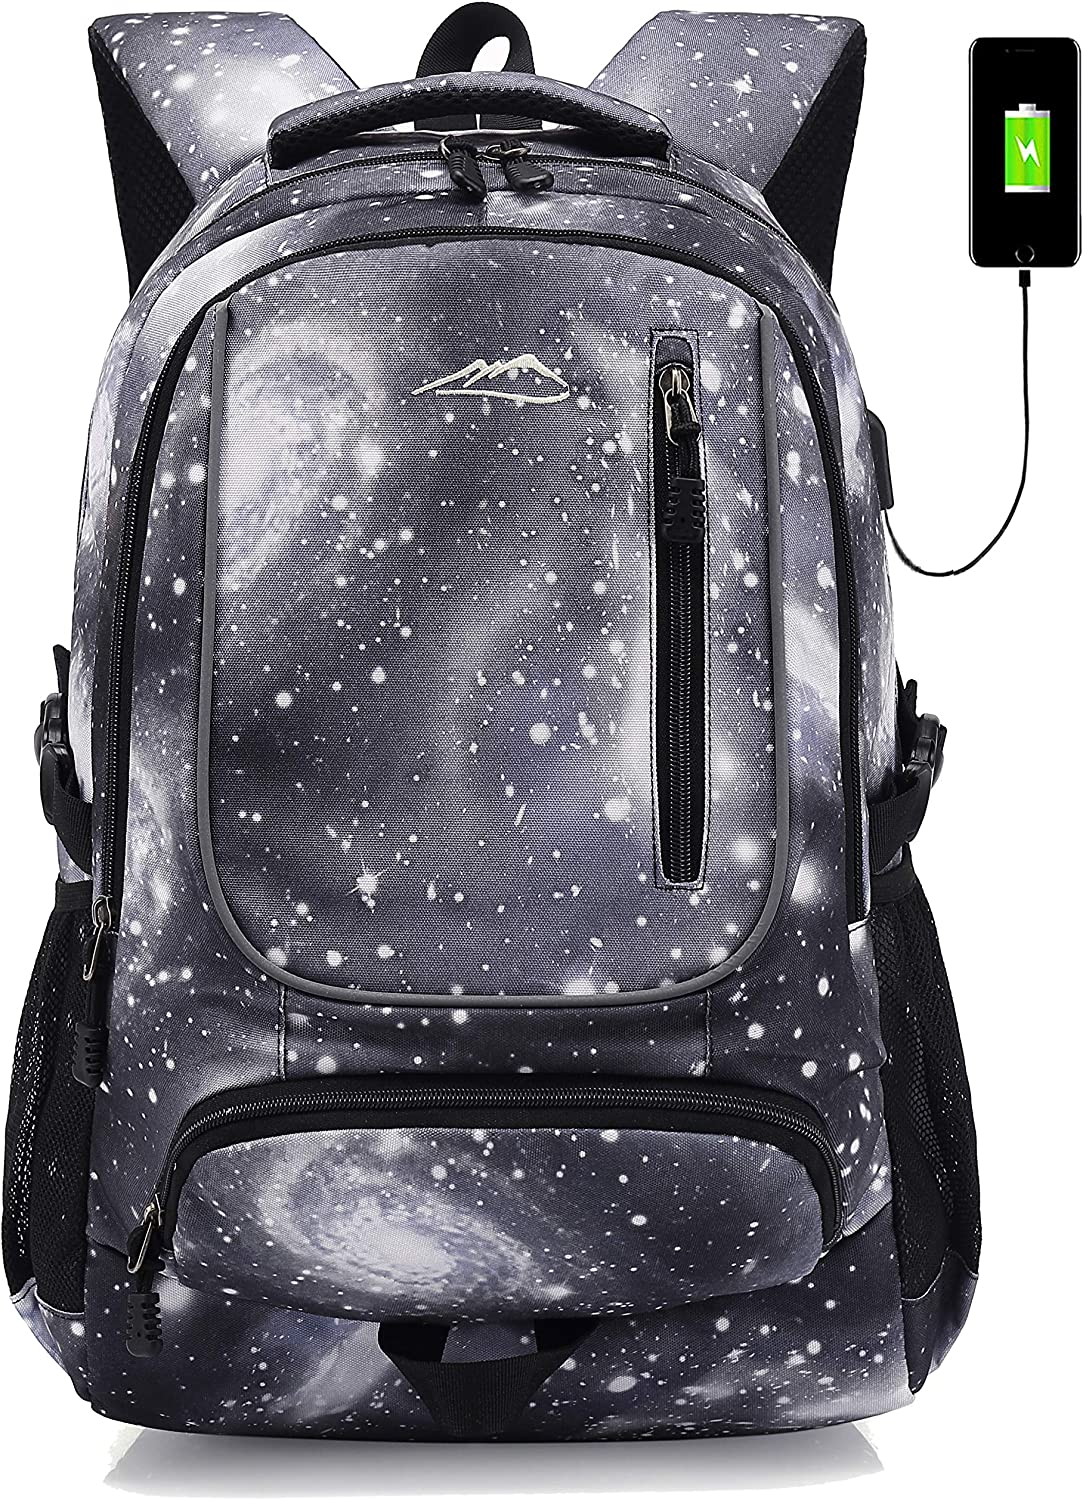 School Backpack Bookbag with USB Charging Port for College Travel Hiking Fit Laptop Up to 15.6 Inch